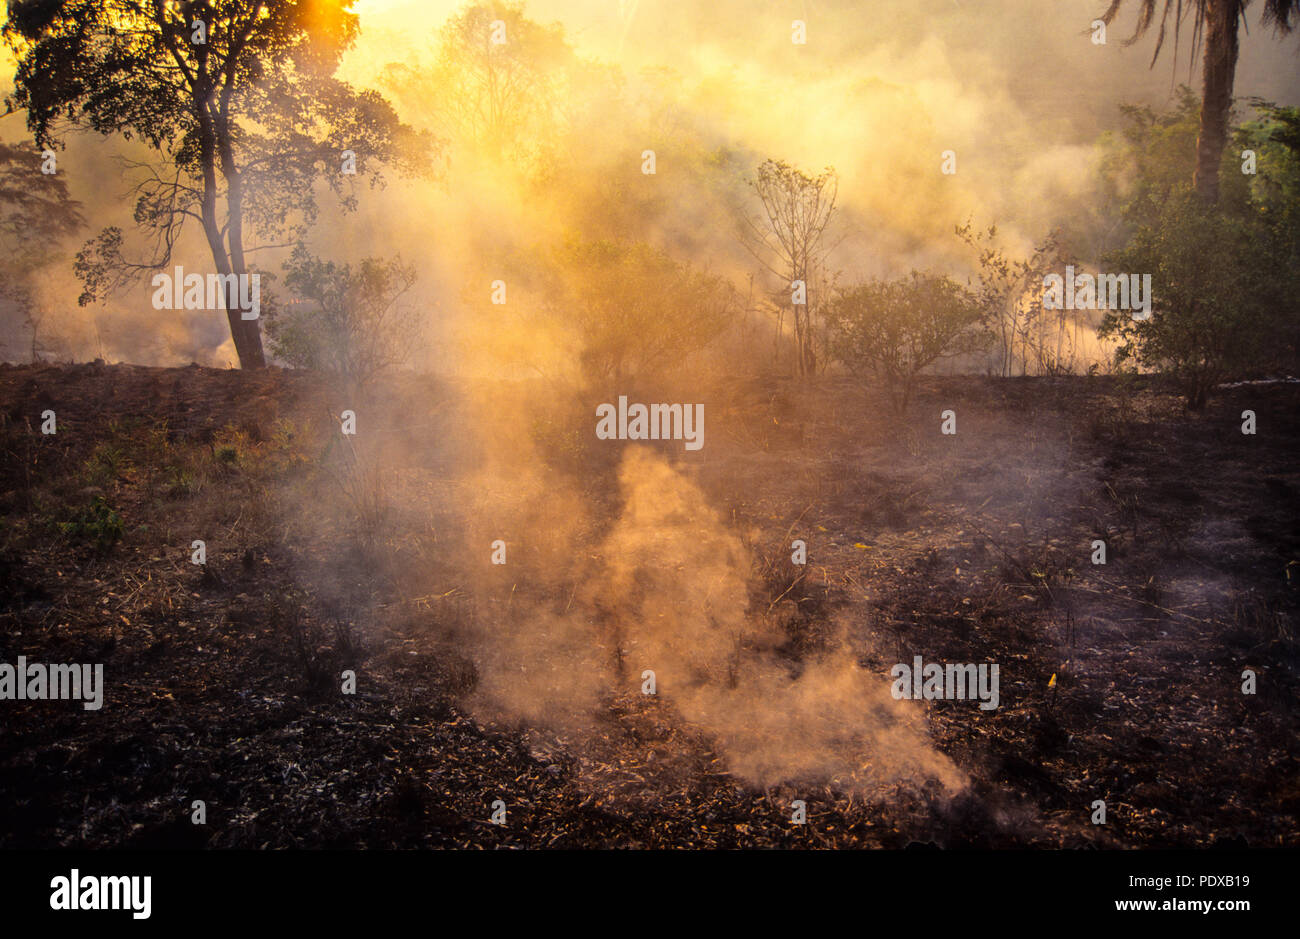 Rainforest Being Burnt for Cattle Ranching, Paragominas, Para State, Brazil, South America. Stock Photo